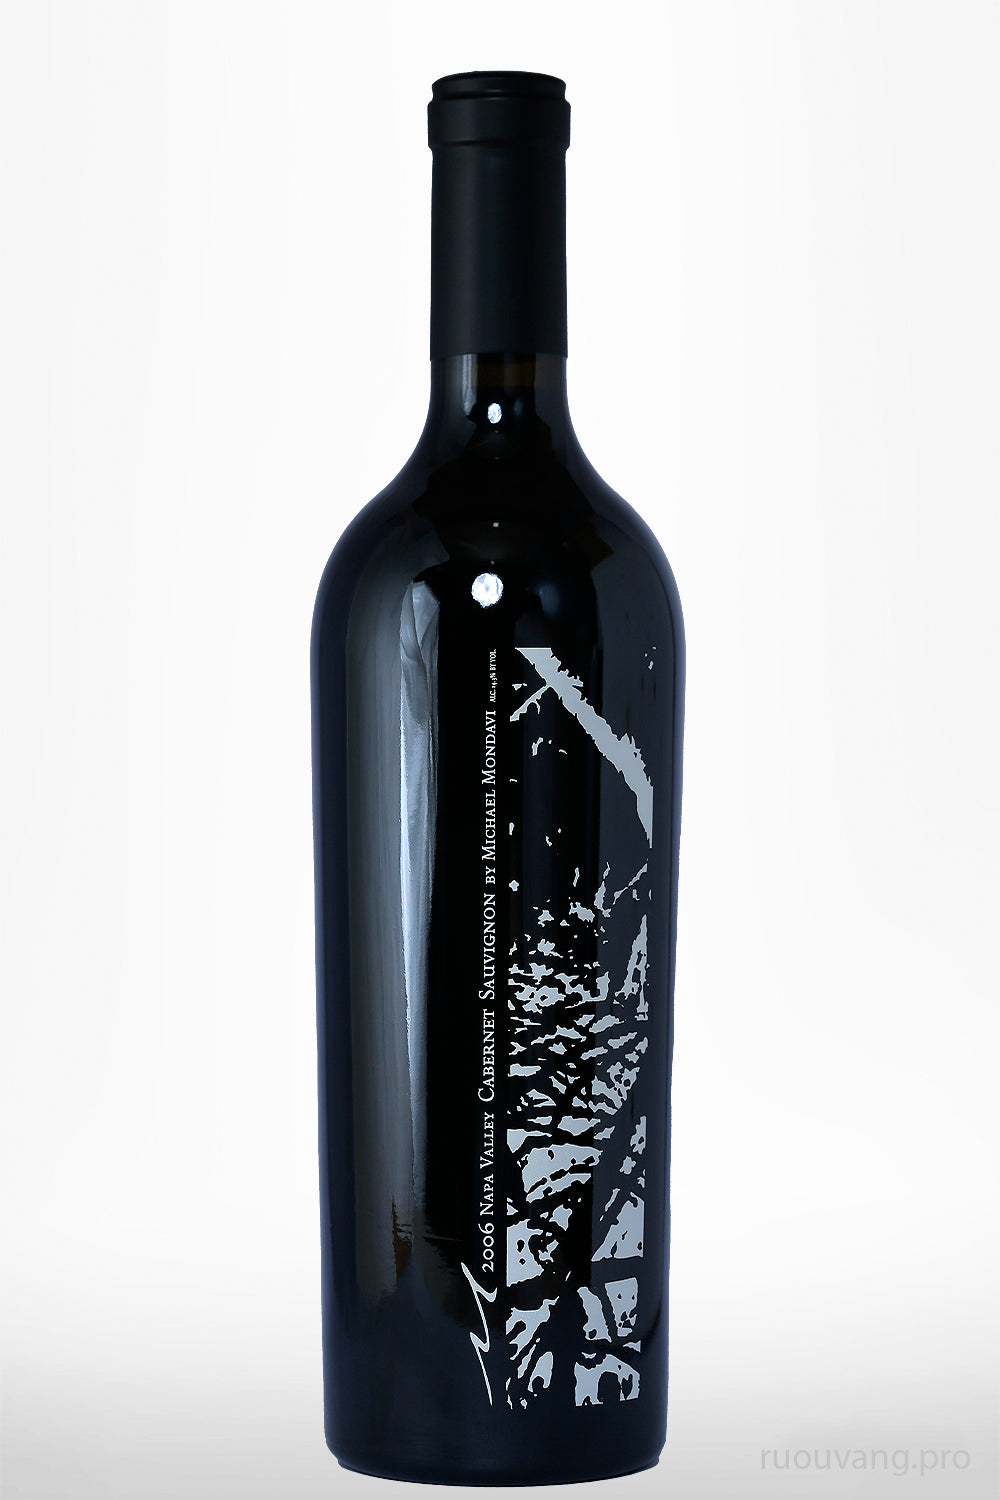 M by Michael Mondavi 2006